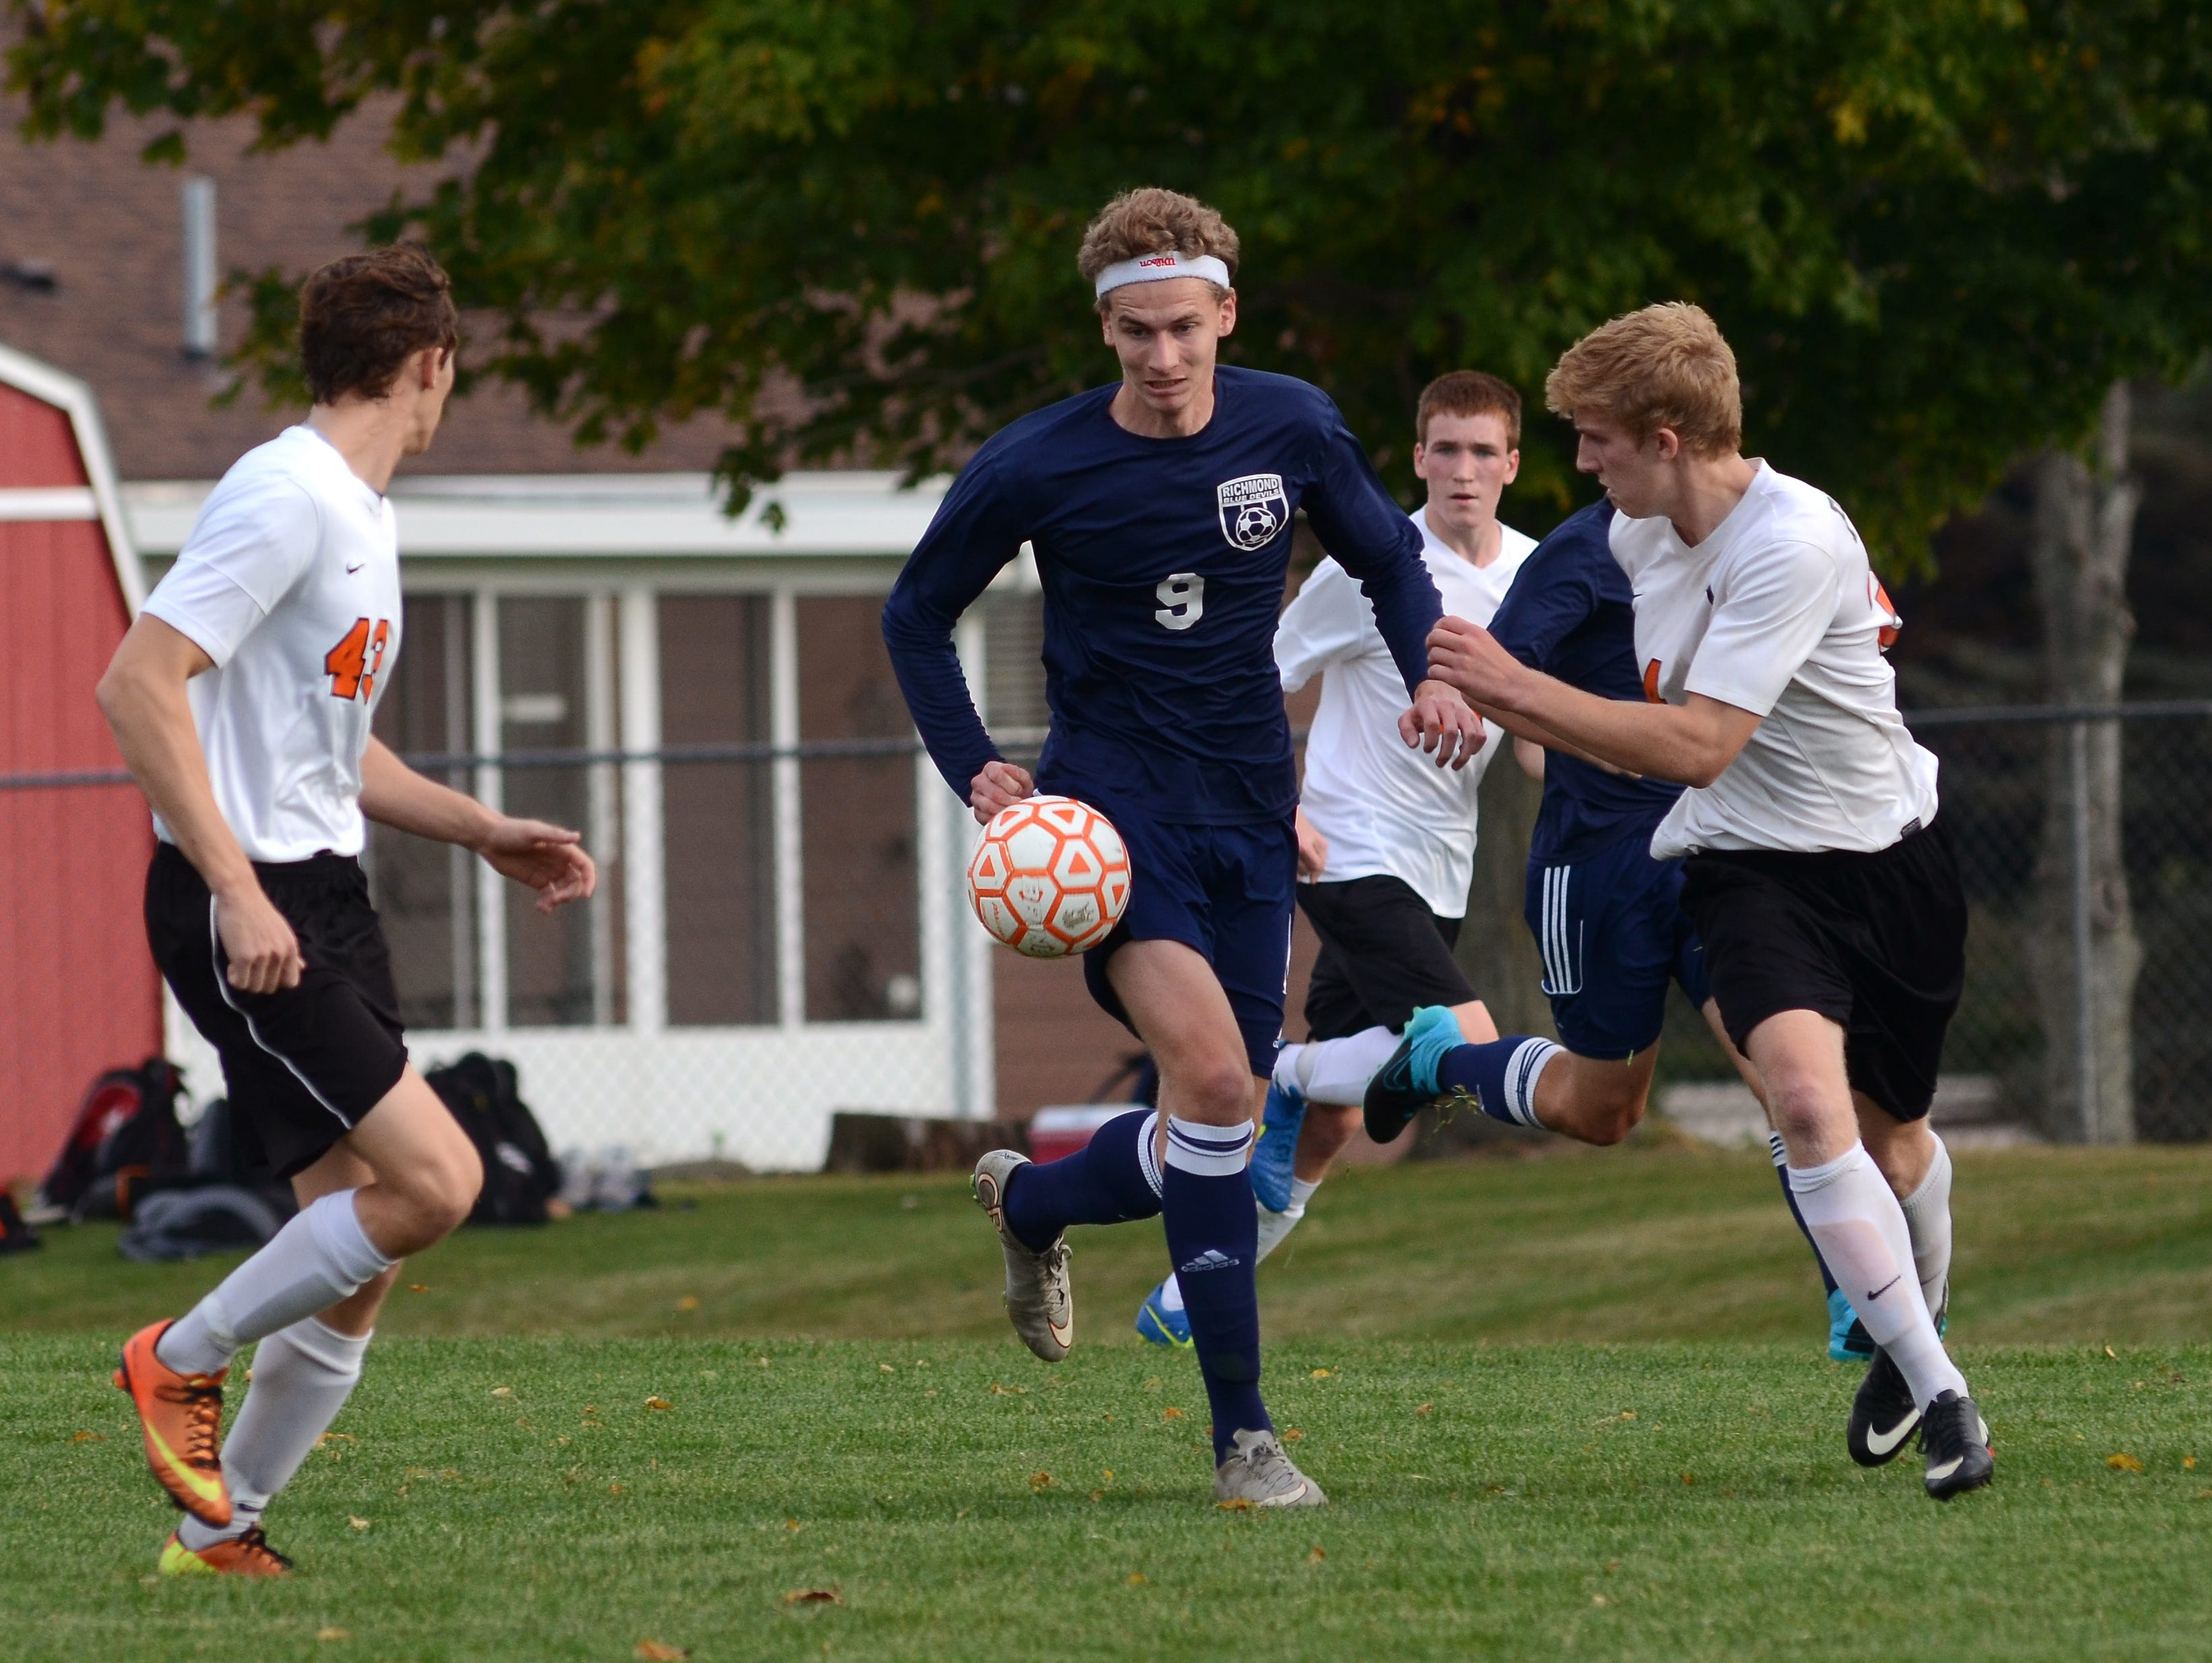 Richmond exchange student Alex Meiniche keeps his eyes on the ball Monday, Oct. 12 during high school soccer action at Almont.